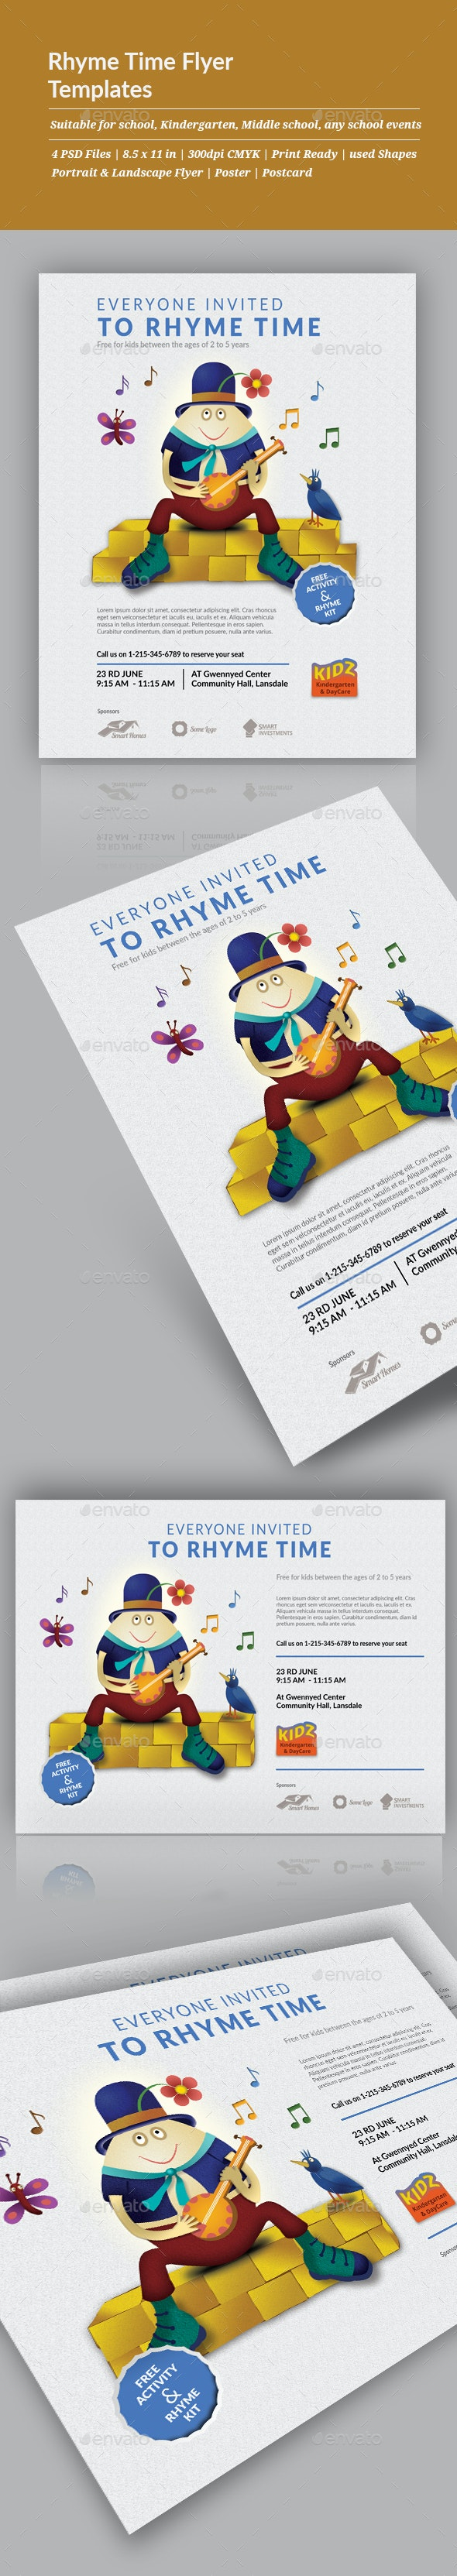 Rhyme Time Flyer Templates - Events Flyers